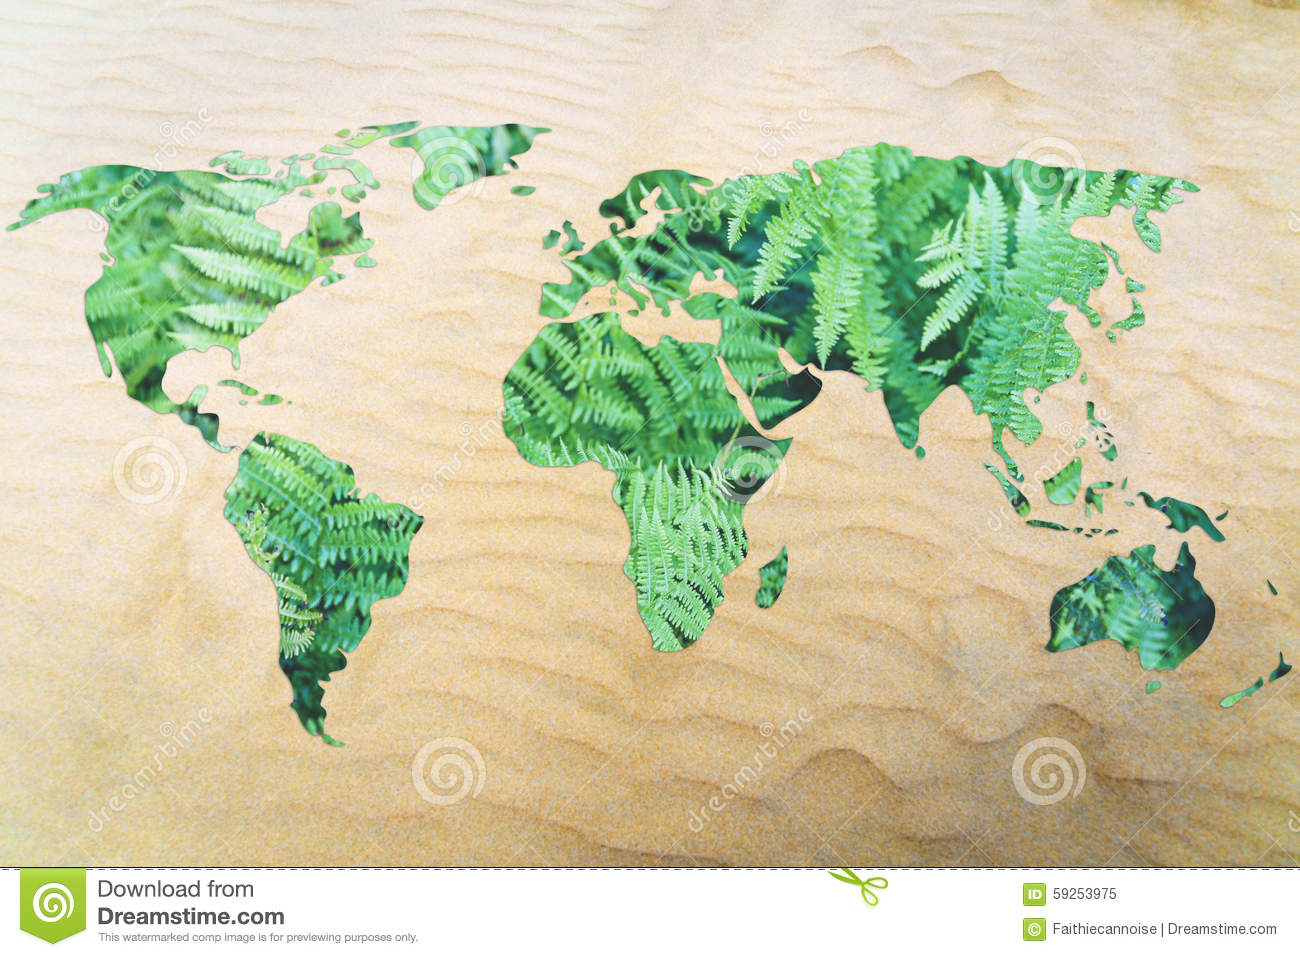 Protect The Environment From Desertification World Map With Lea